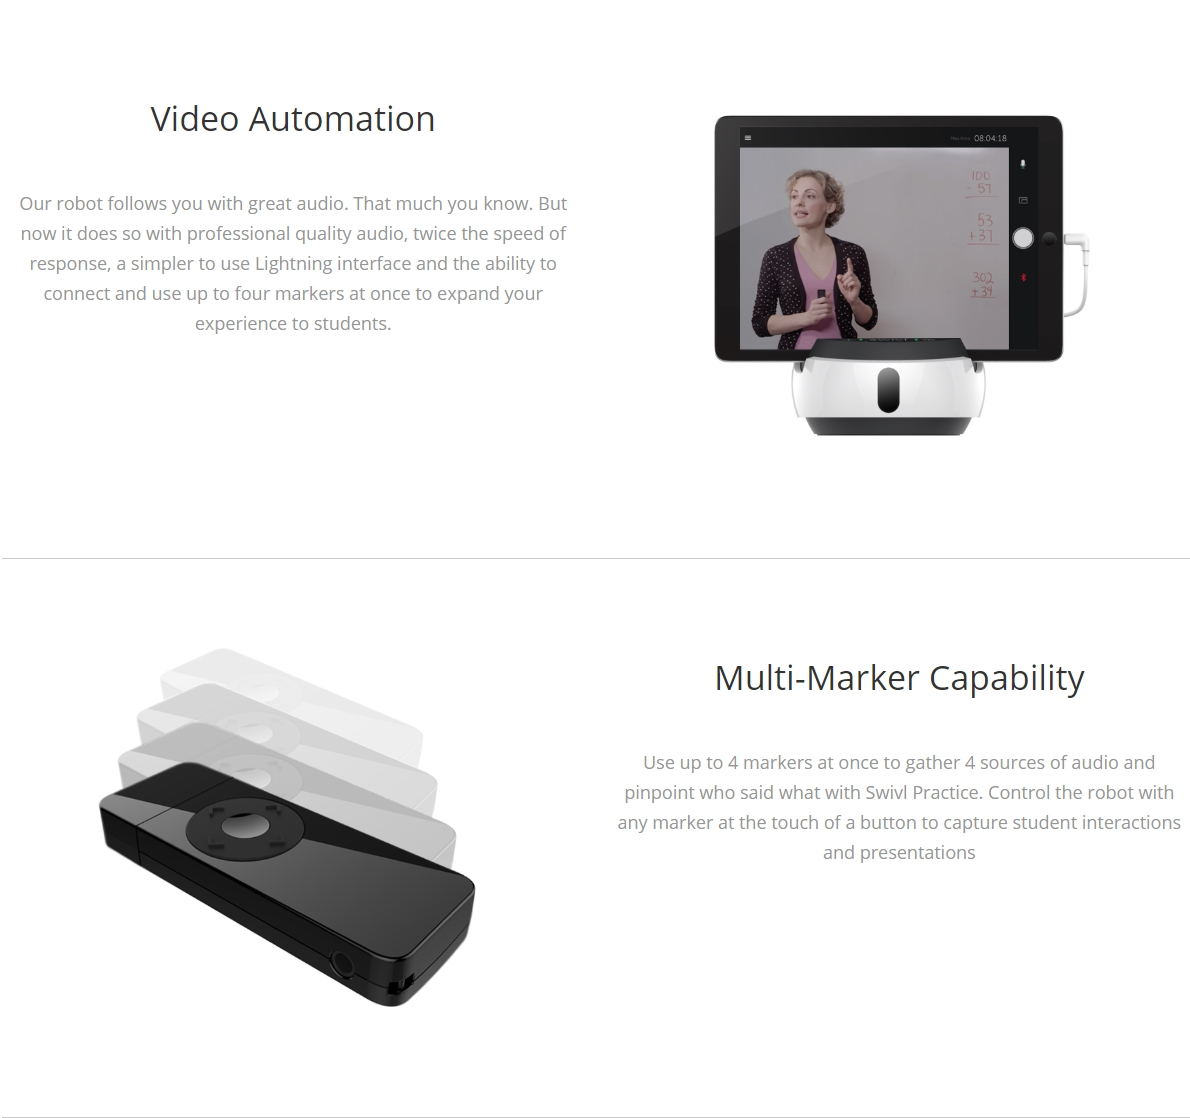 A large marketing image providing additional information about the product Swivl C Series Robot C3 - Additional alt info not provided